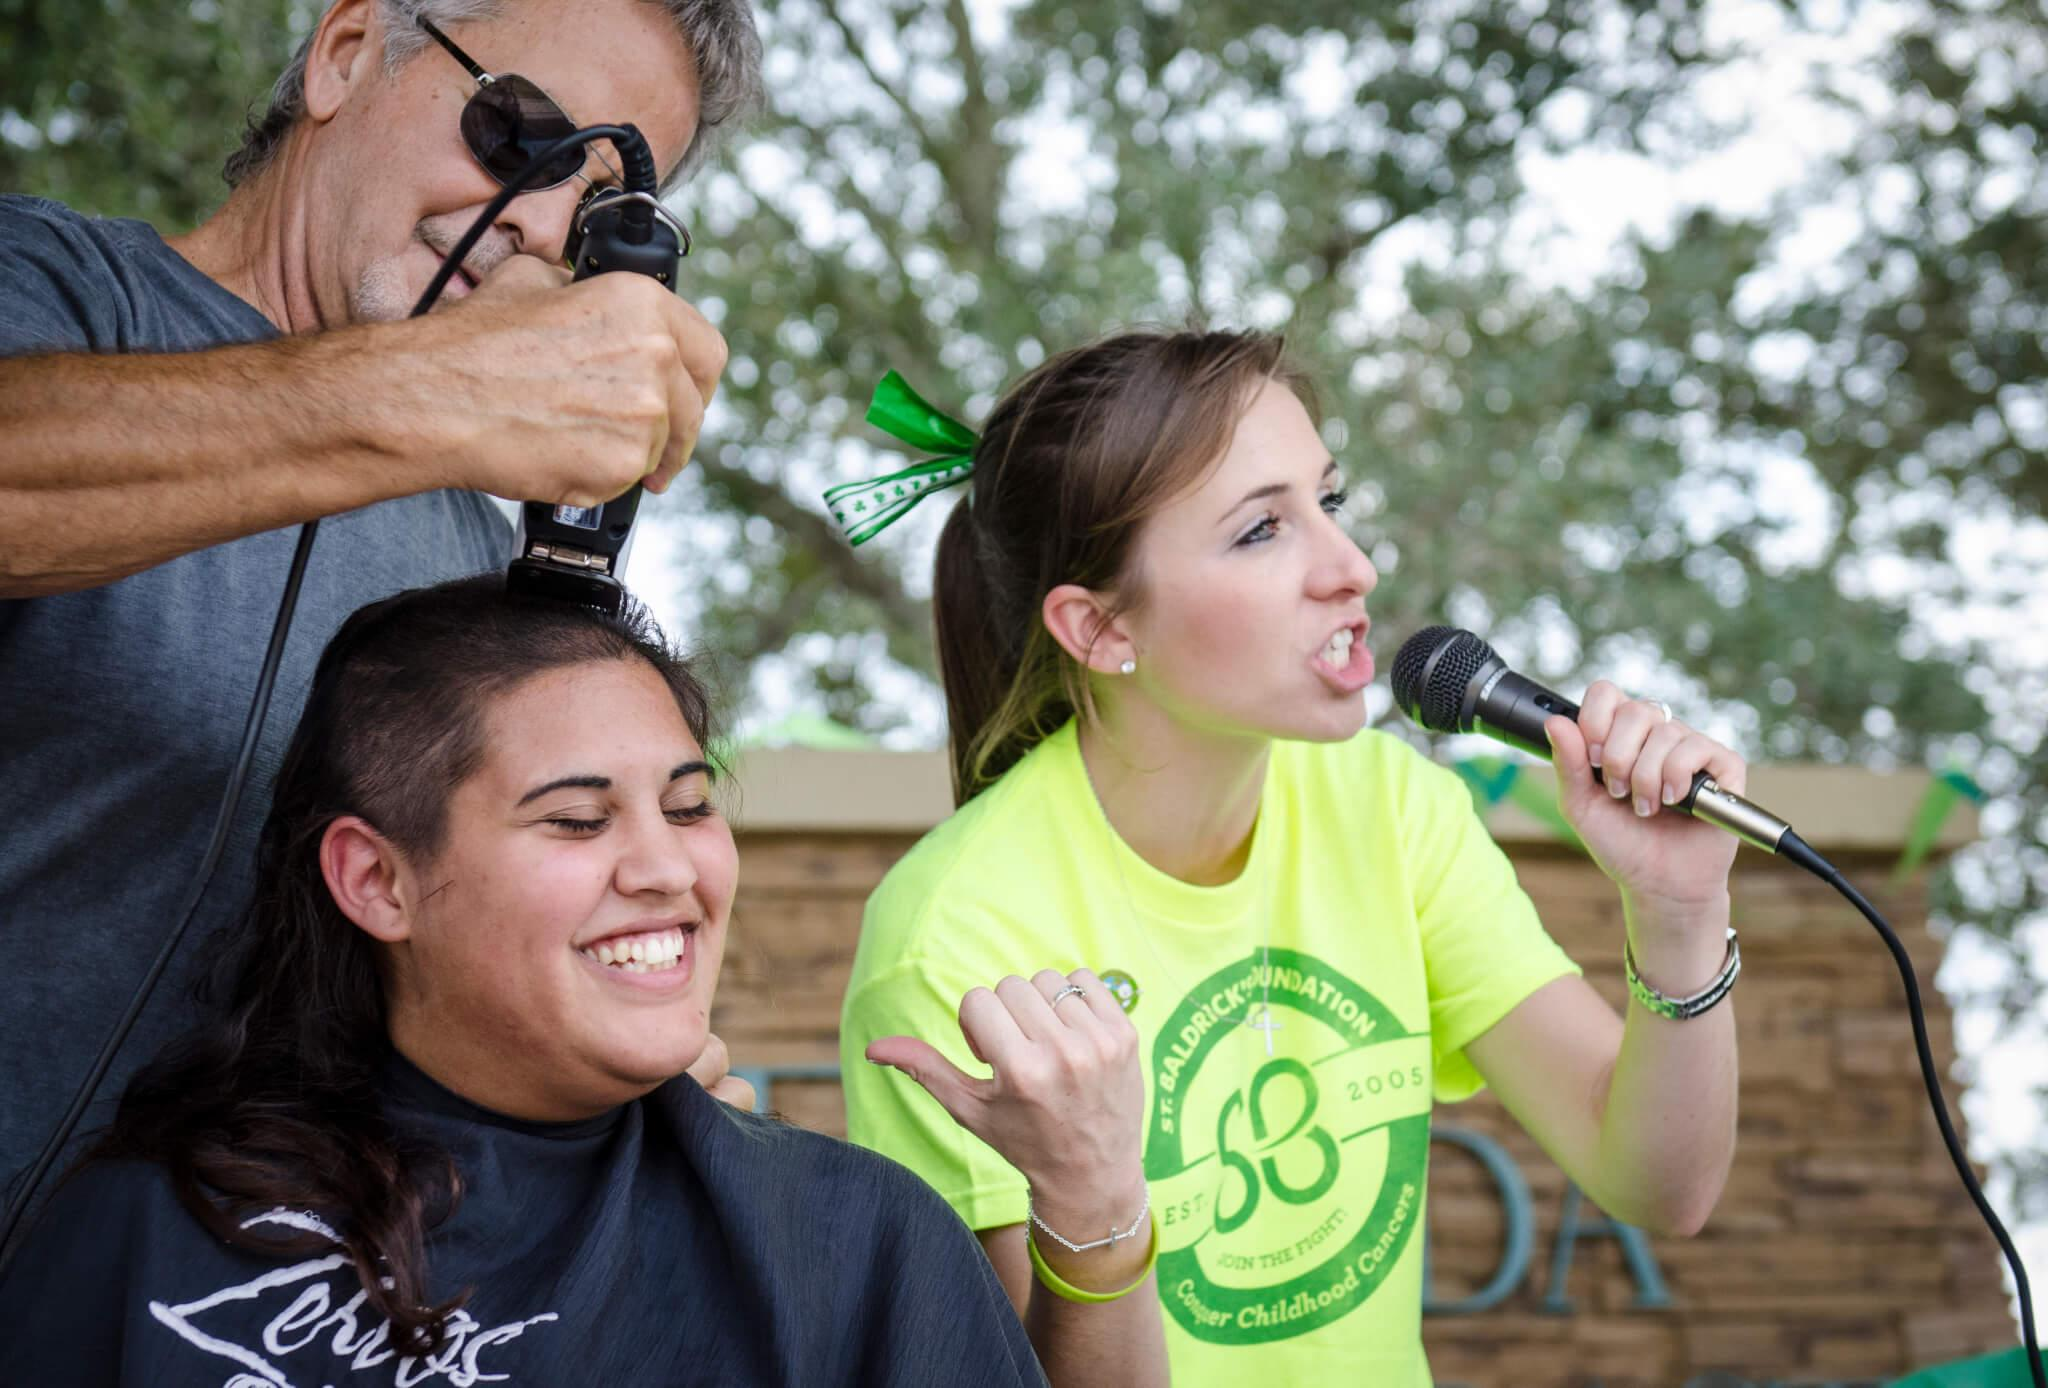 St. Baldrick's Day extends to the community for its sixth year